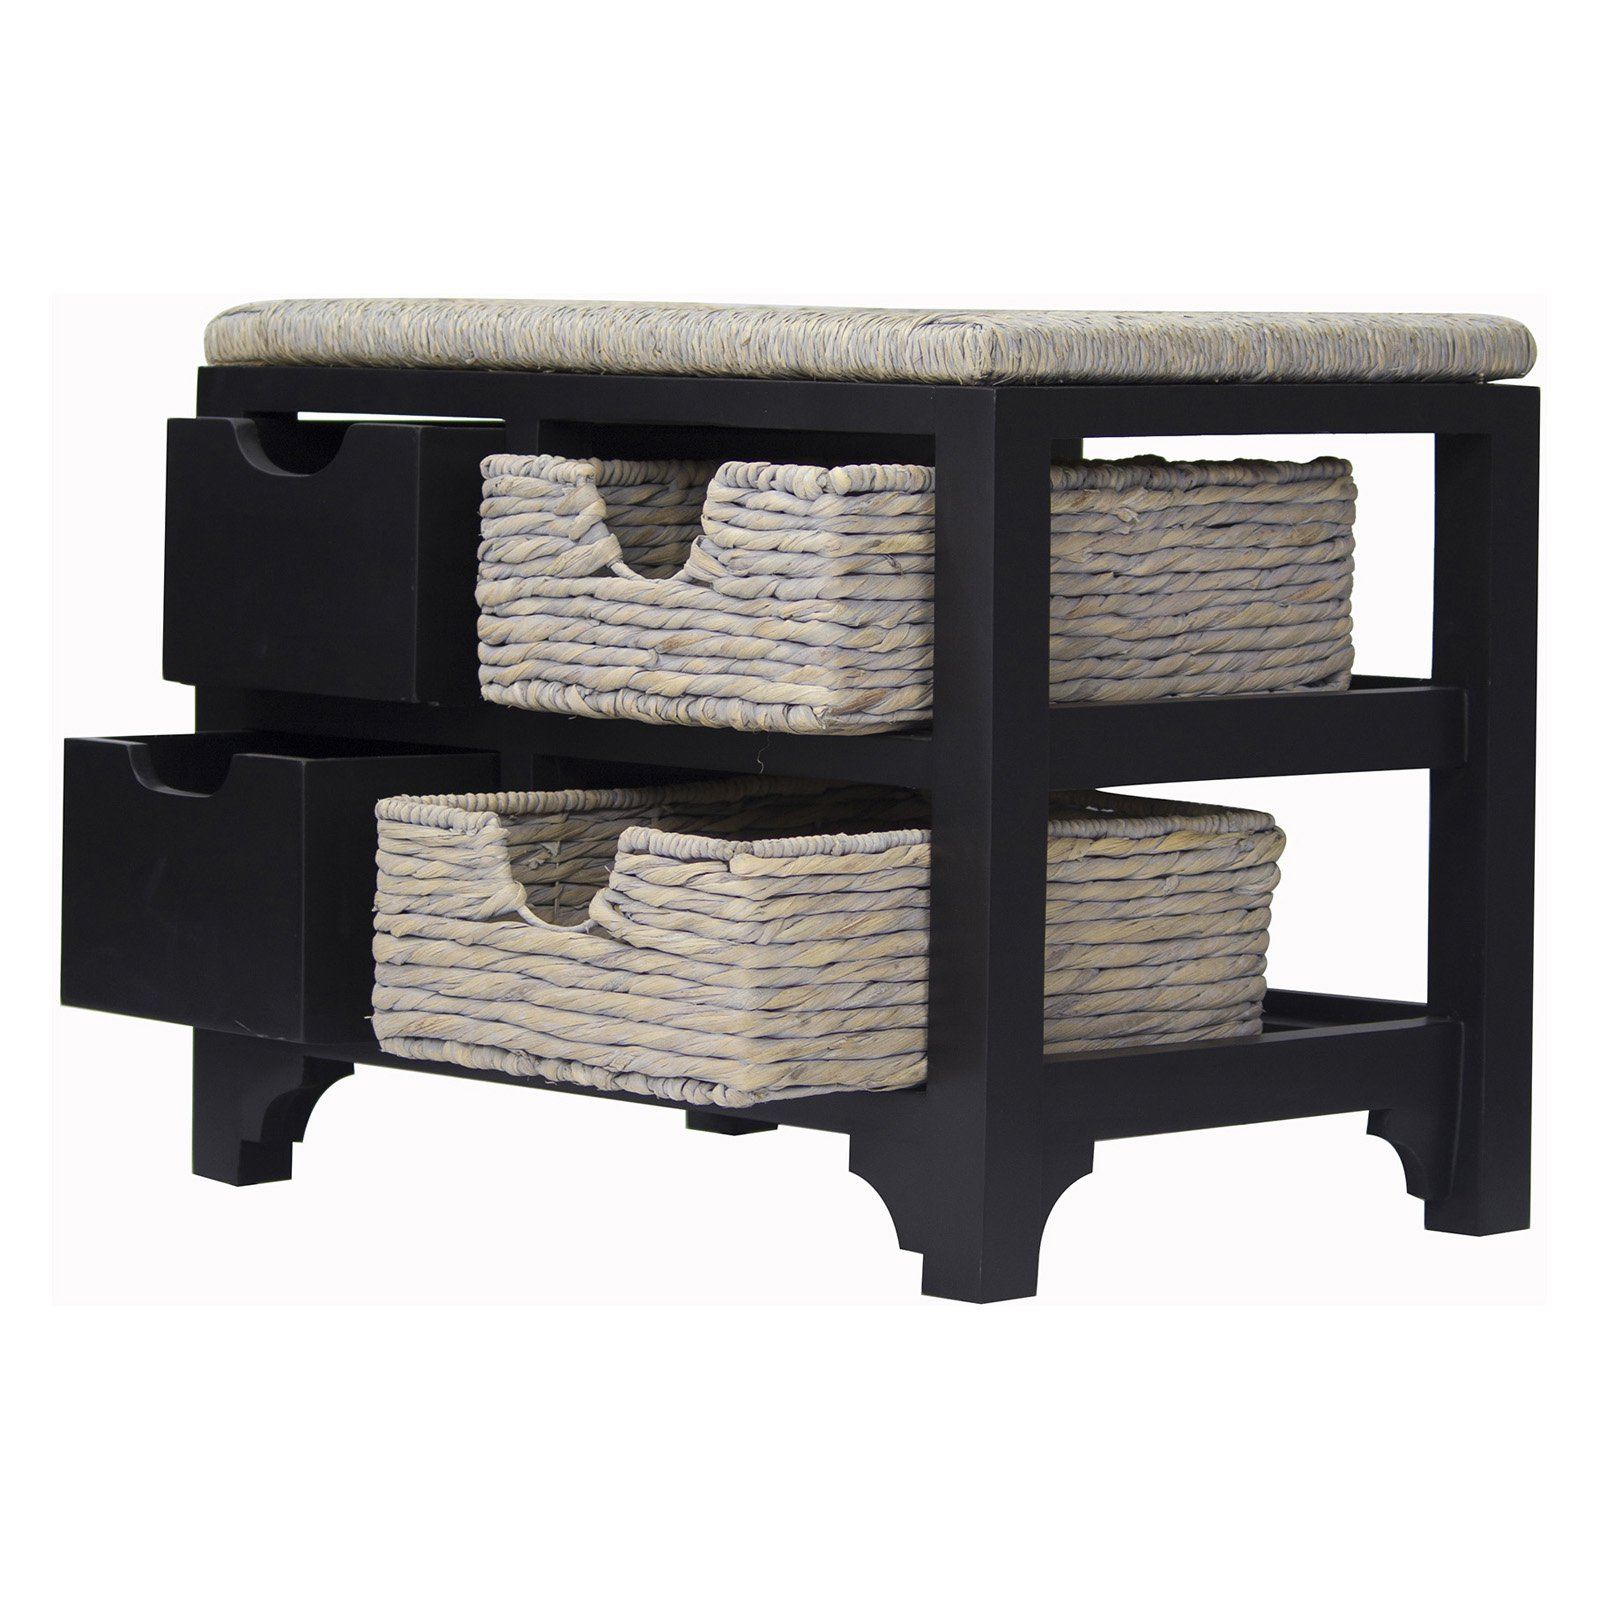 Awesome Heather Ann Creations Vale Seagrass Top 2 Drawer 2 Basket Storage Bench Ocoug Best Dining Table And Chair Ideas Images Ocougorg